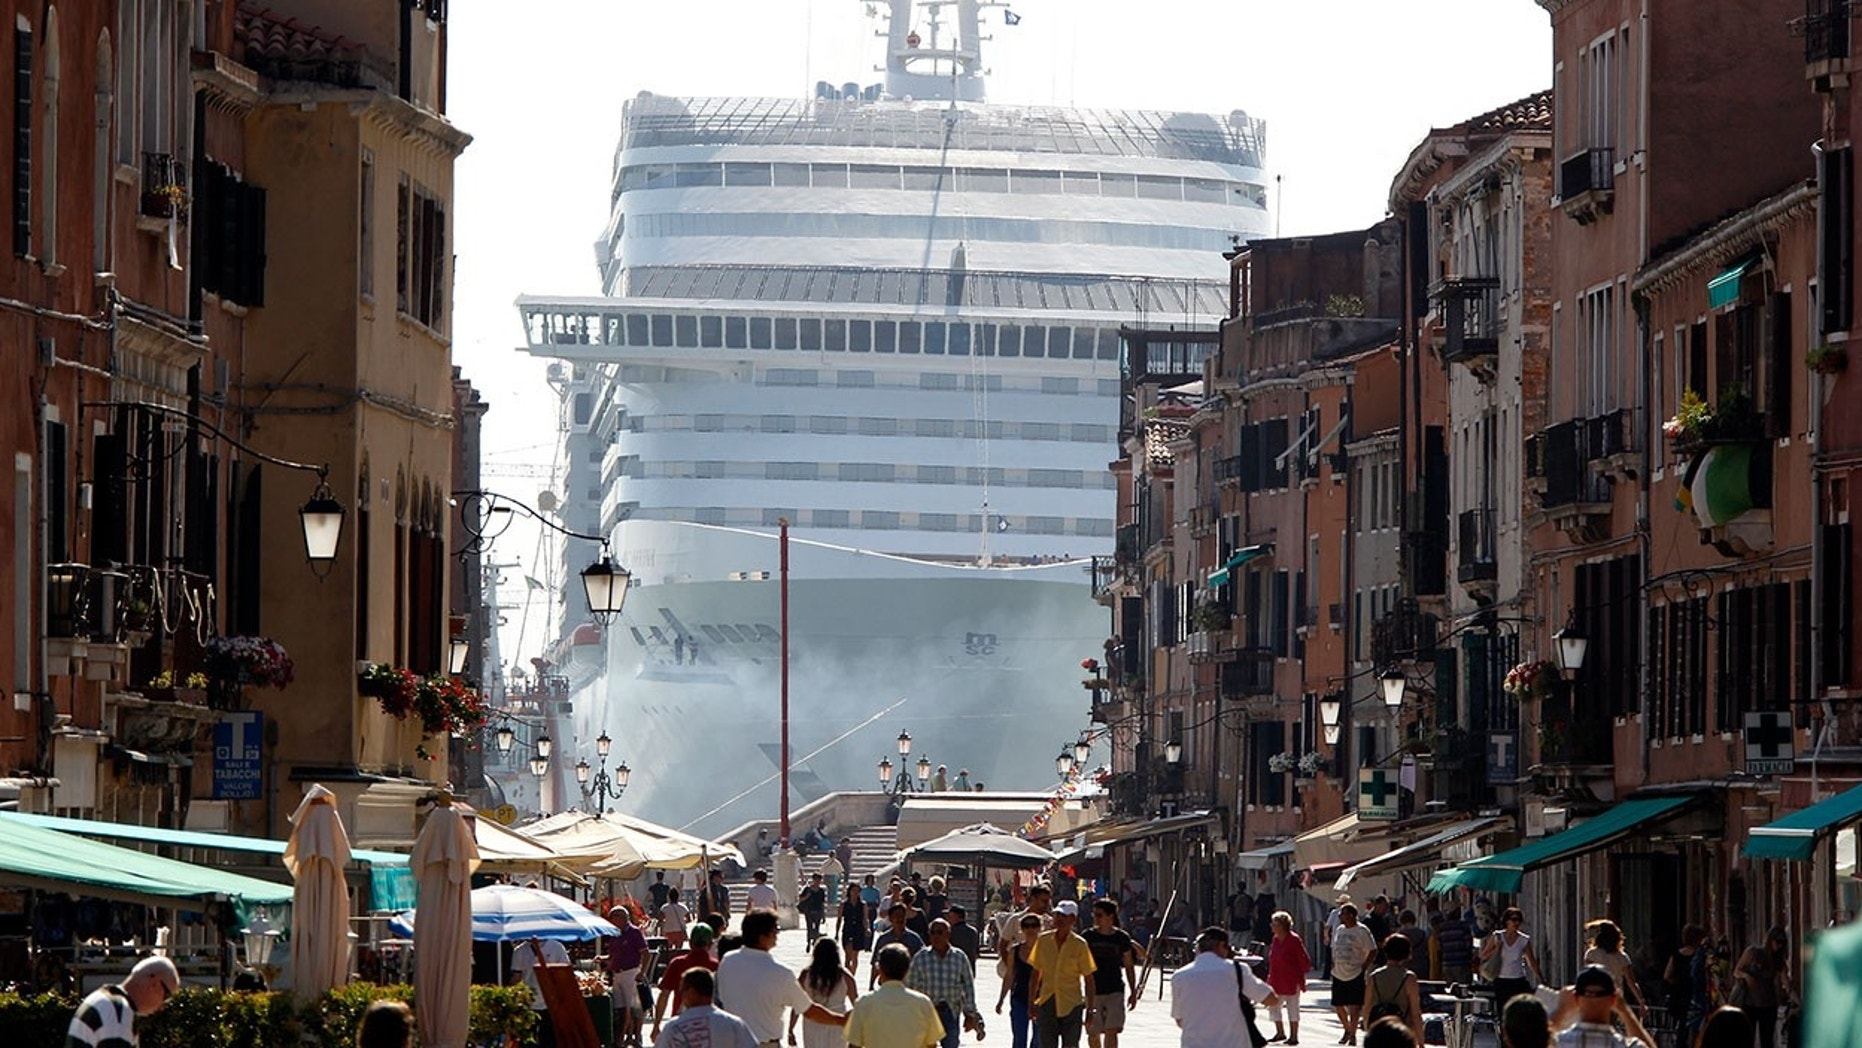 Venice Says Cruise Ships No Longer Welcome in City Center